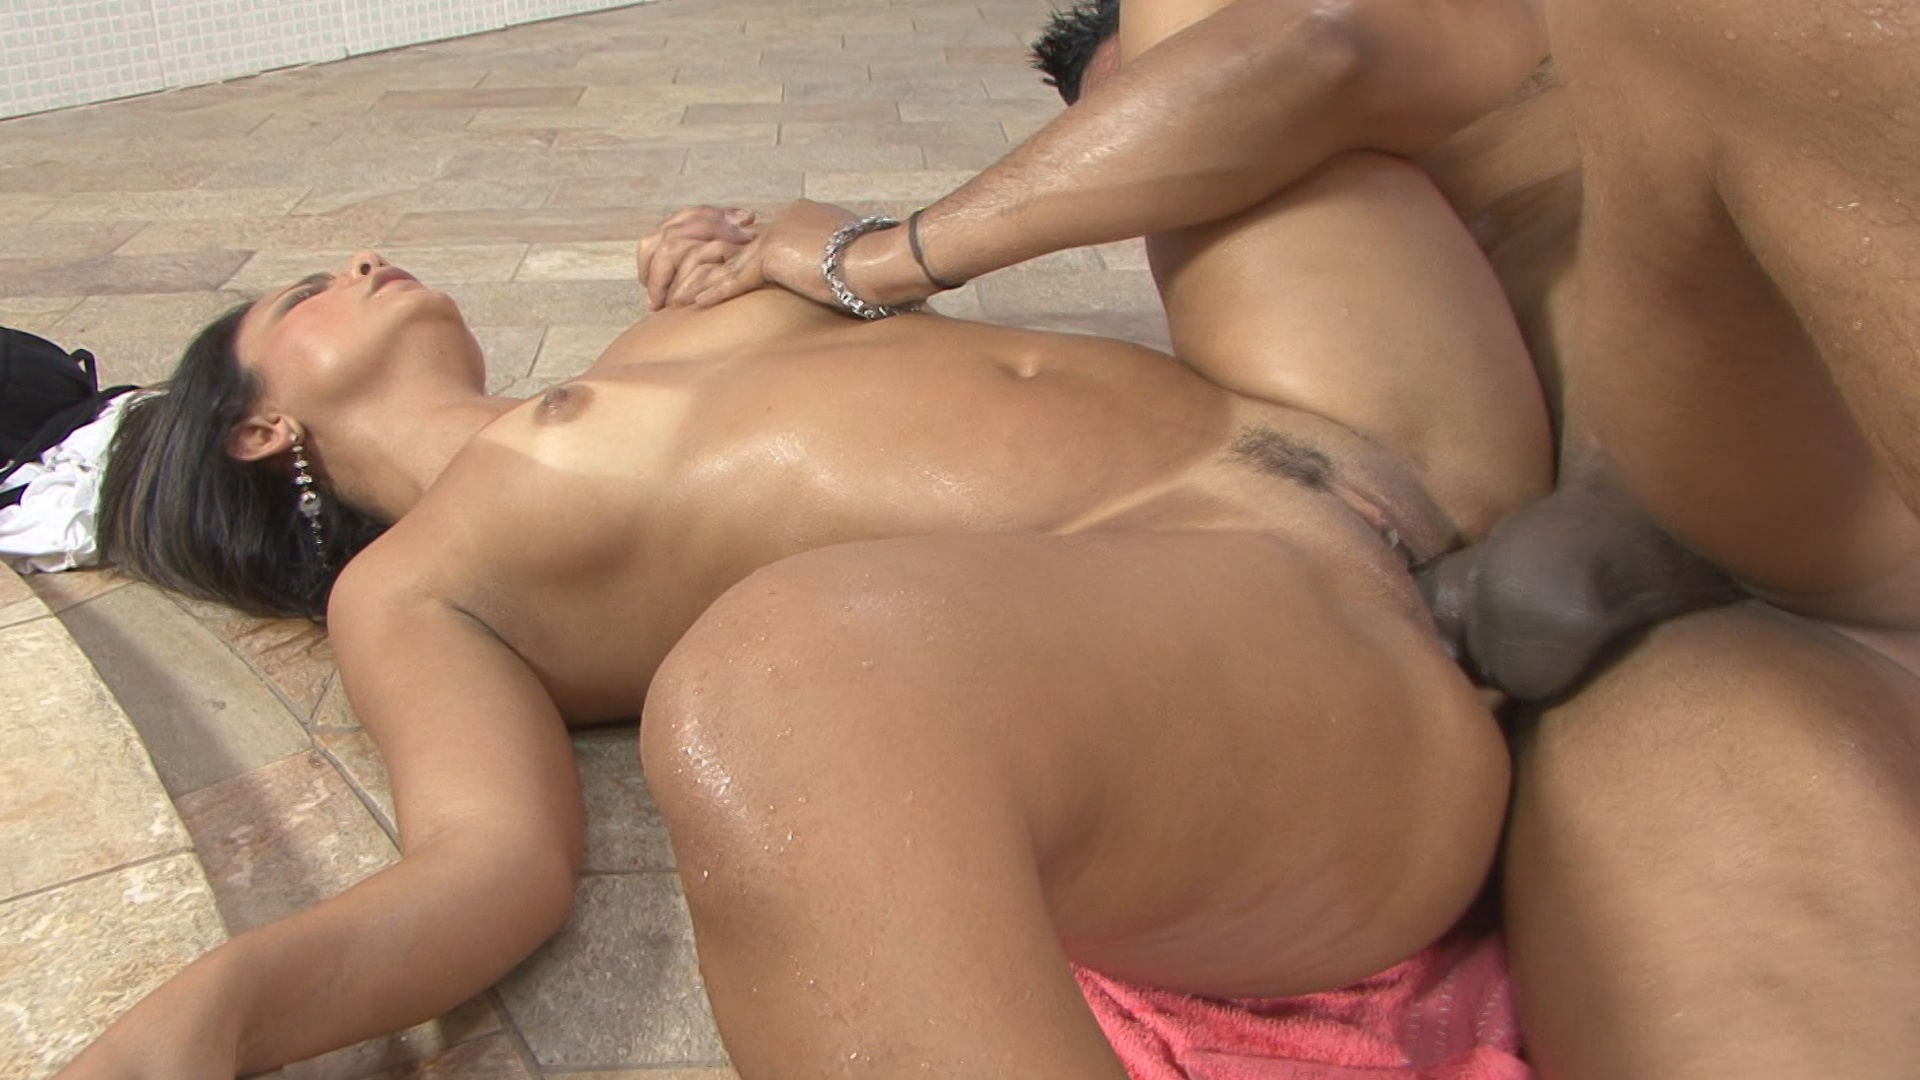 anal sex woman on top